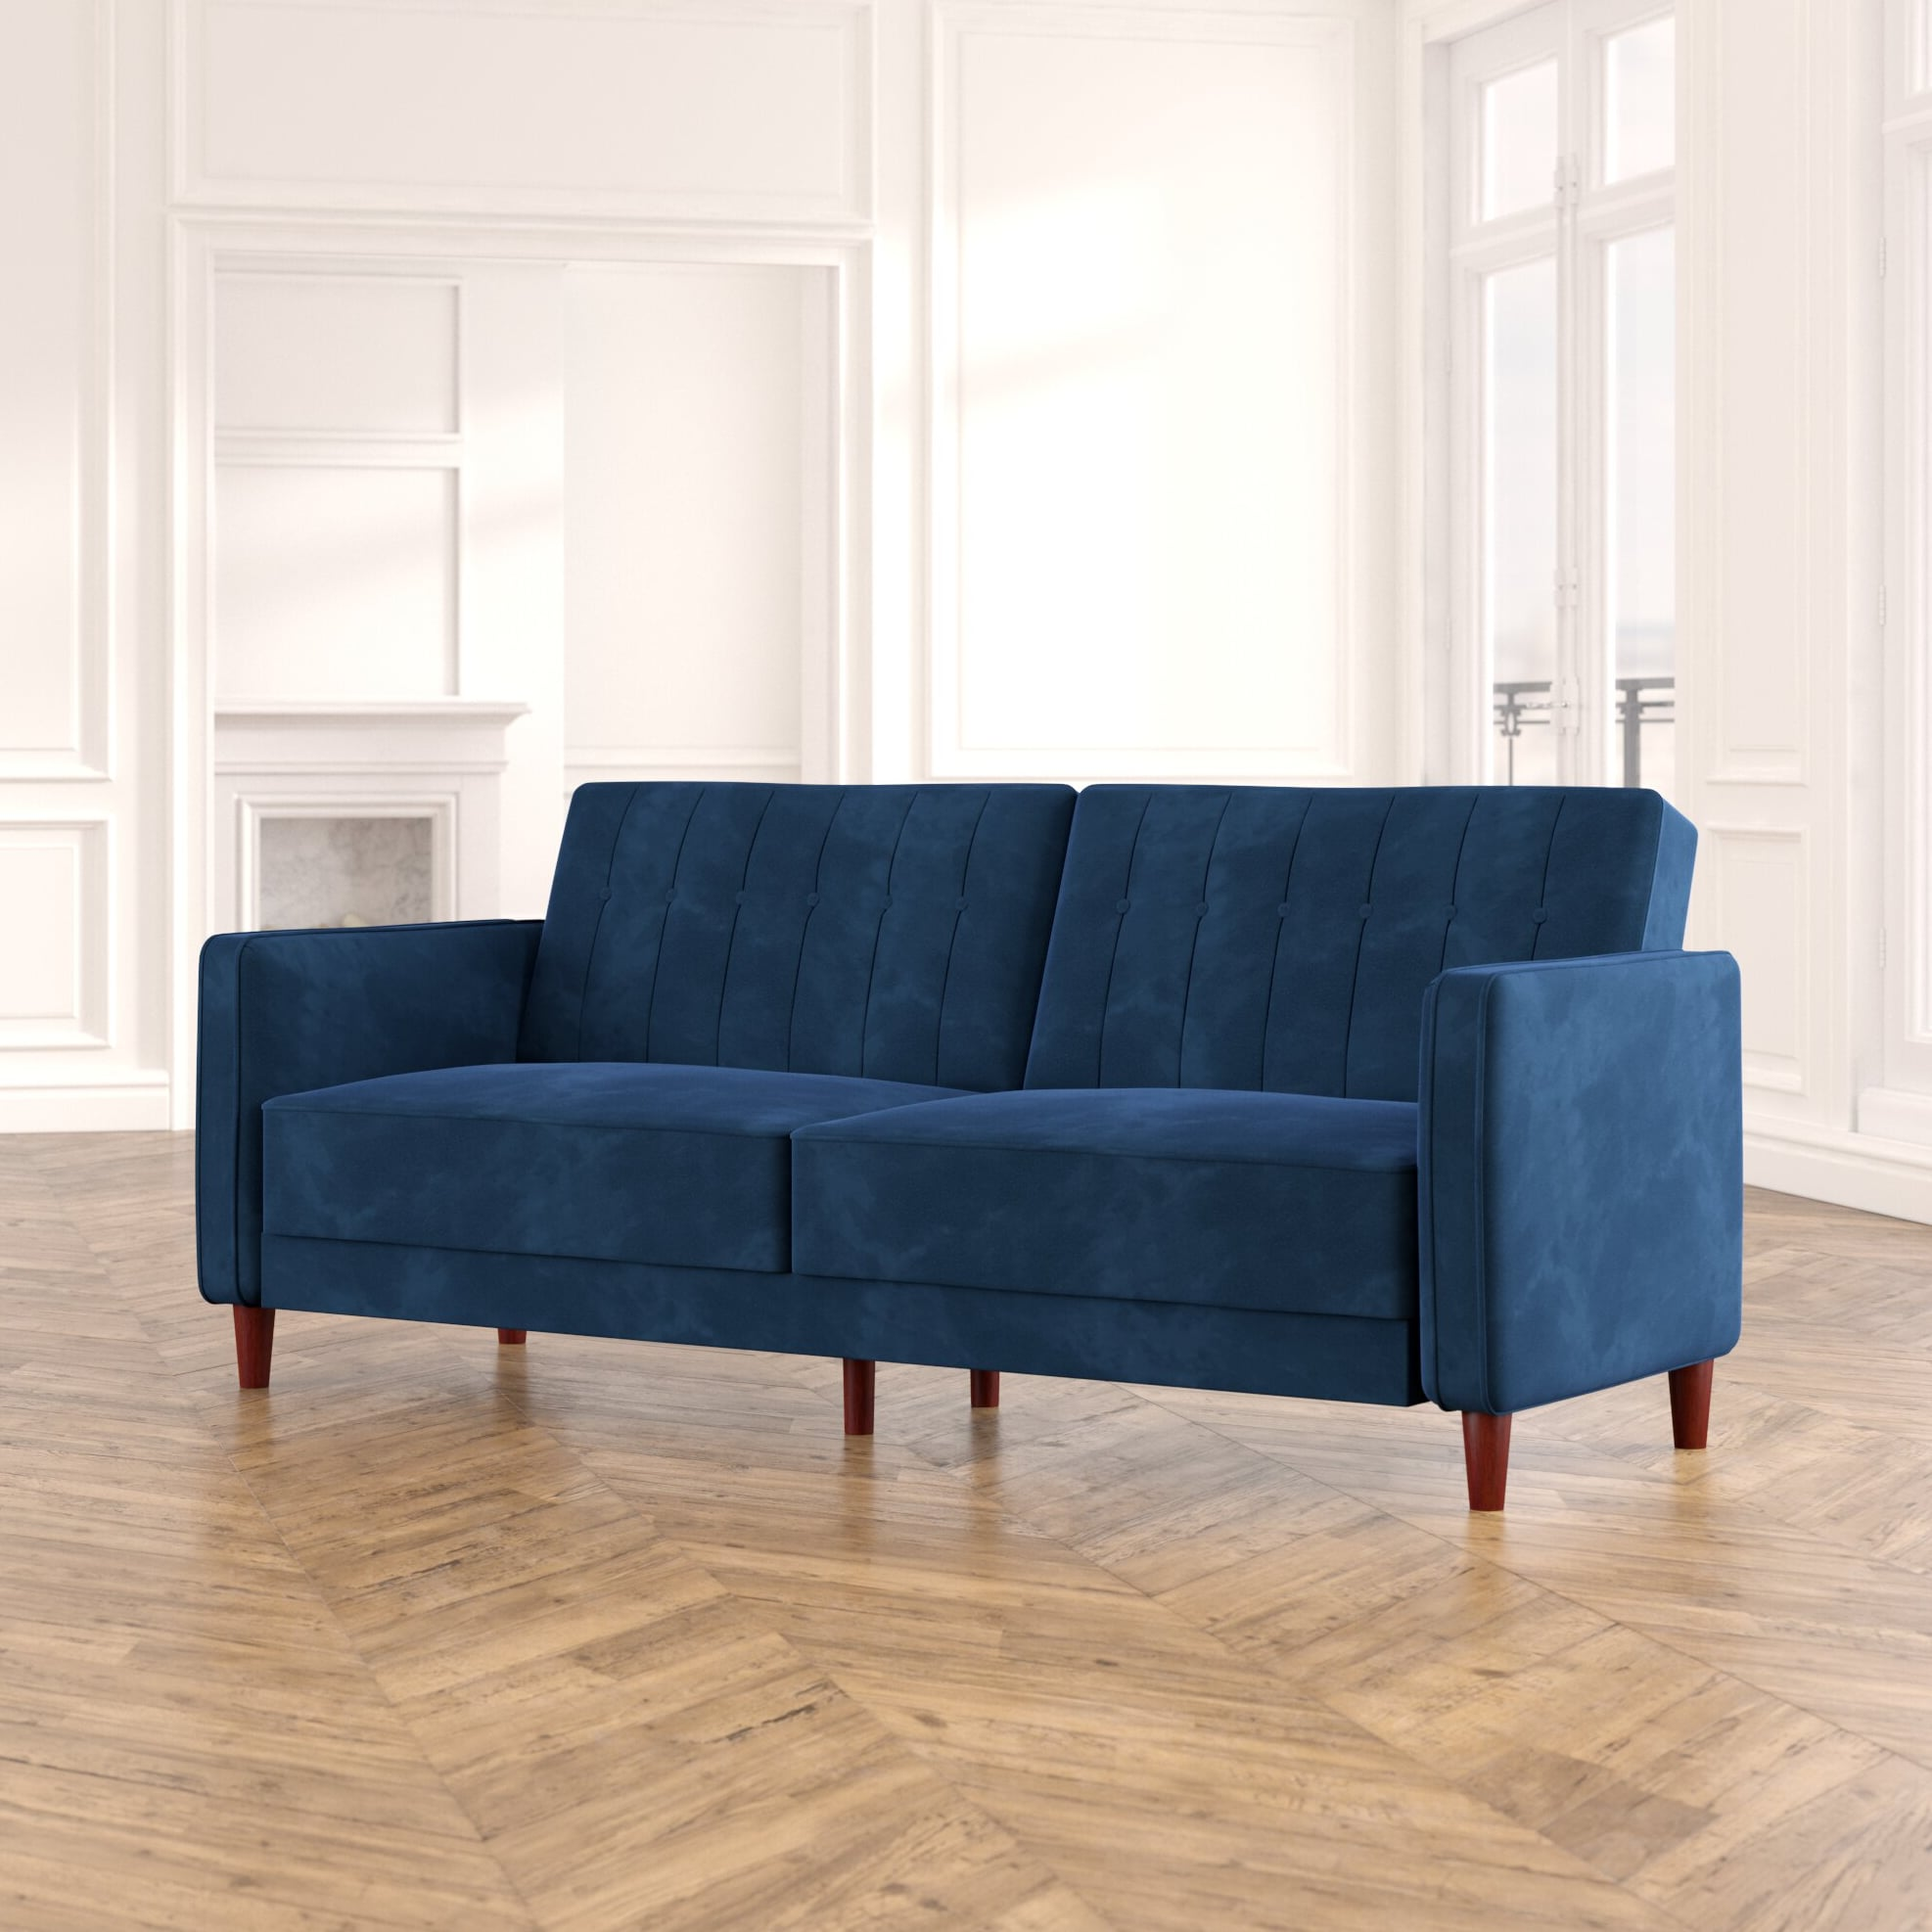 Best Cheap Couches Under $450 | 2021 Guide | POPSUGAR Home